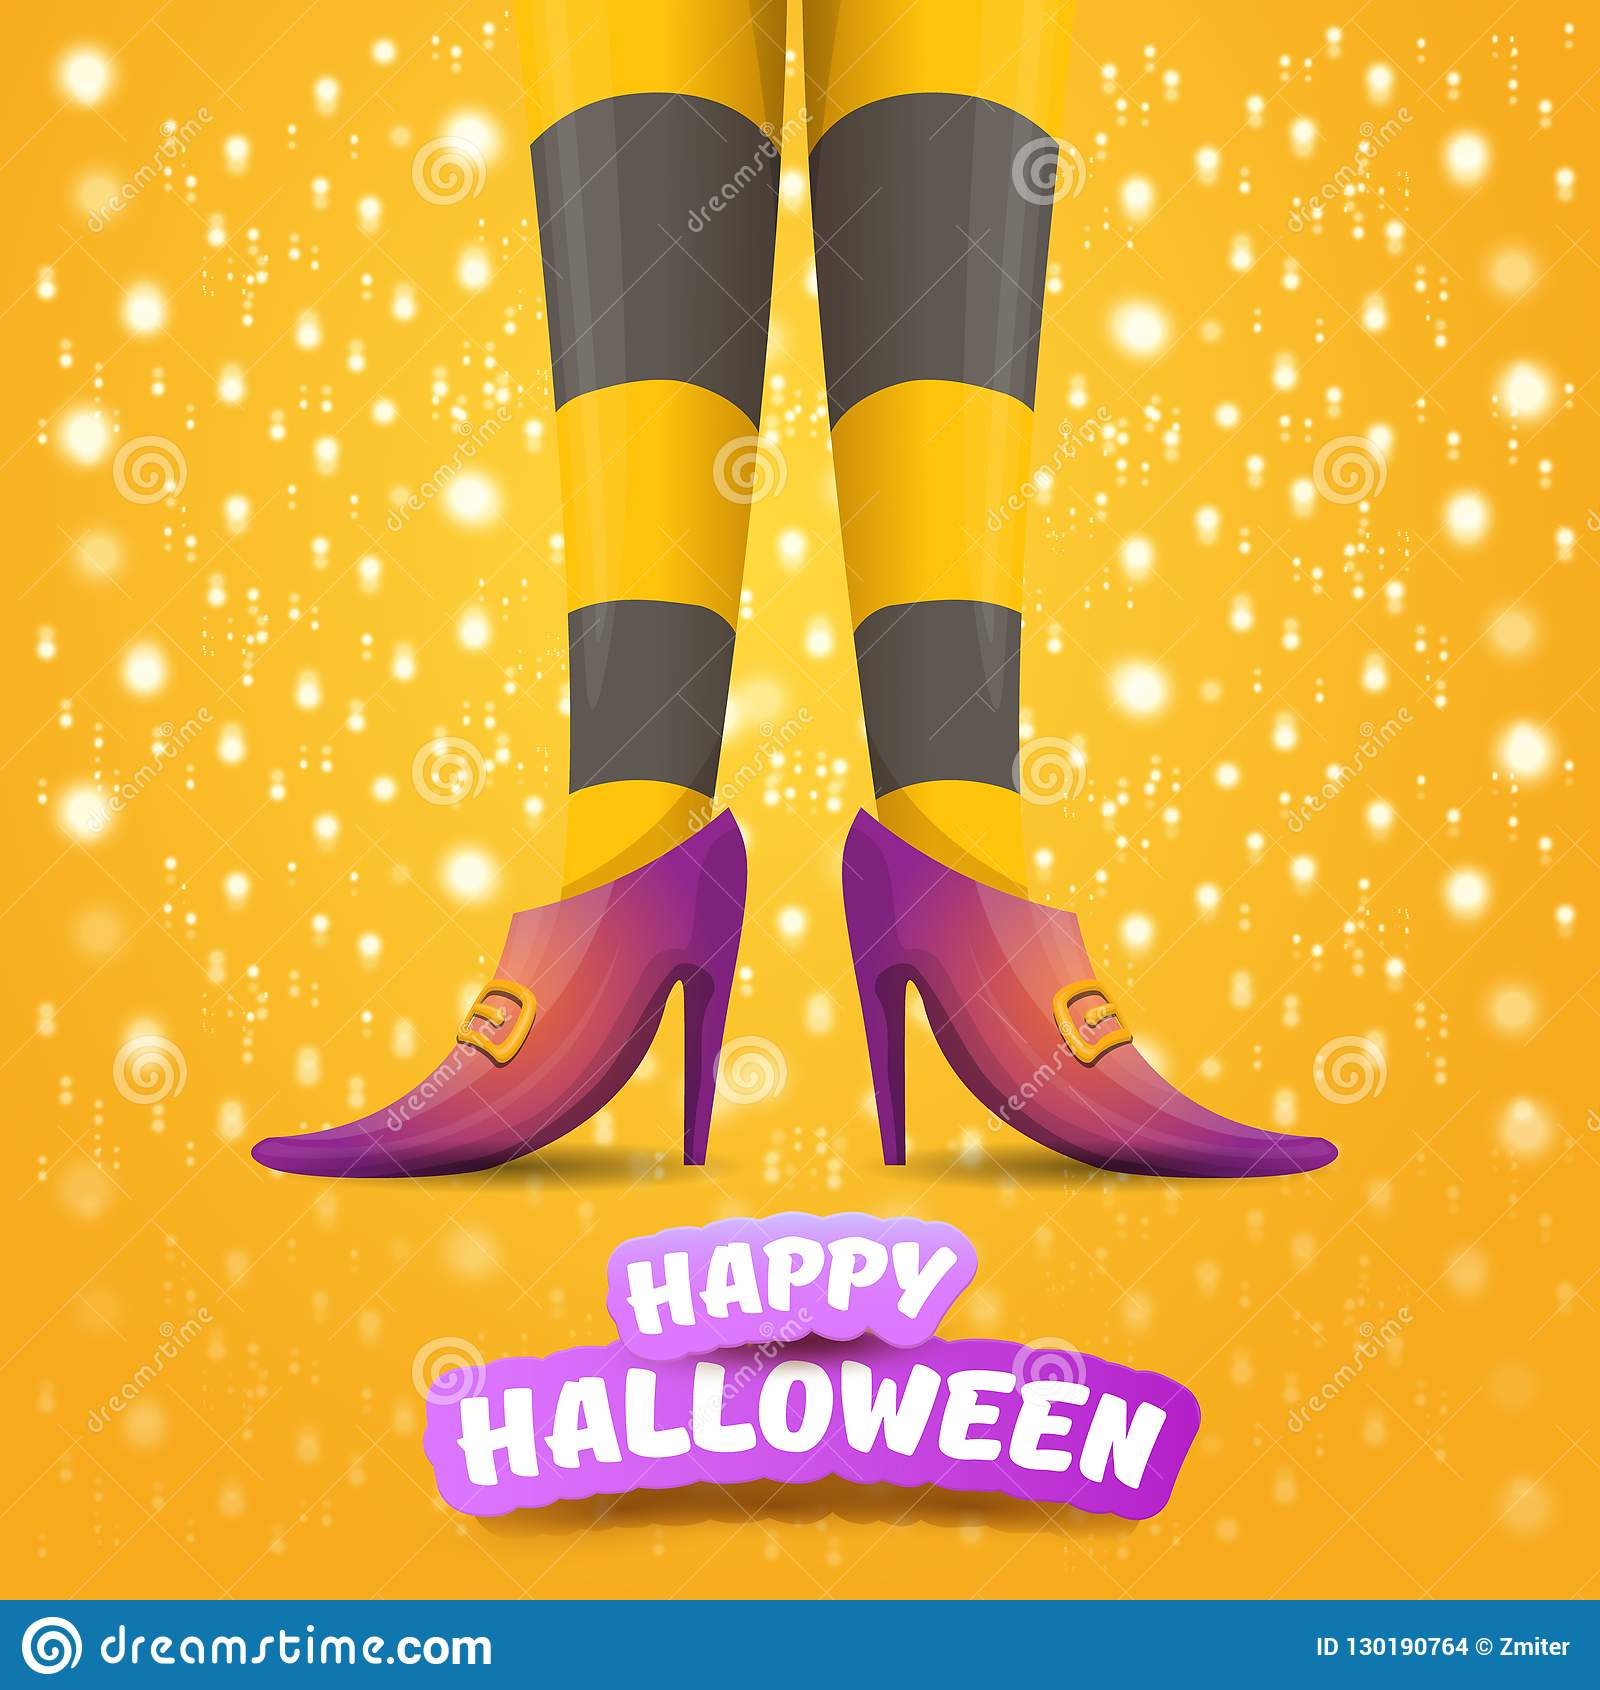 Vector cartoon halloween party poster with women witch legs and vintage ribbon with text happy halloween on orange